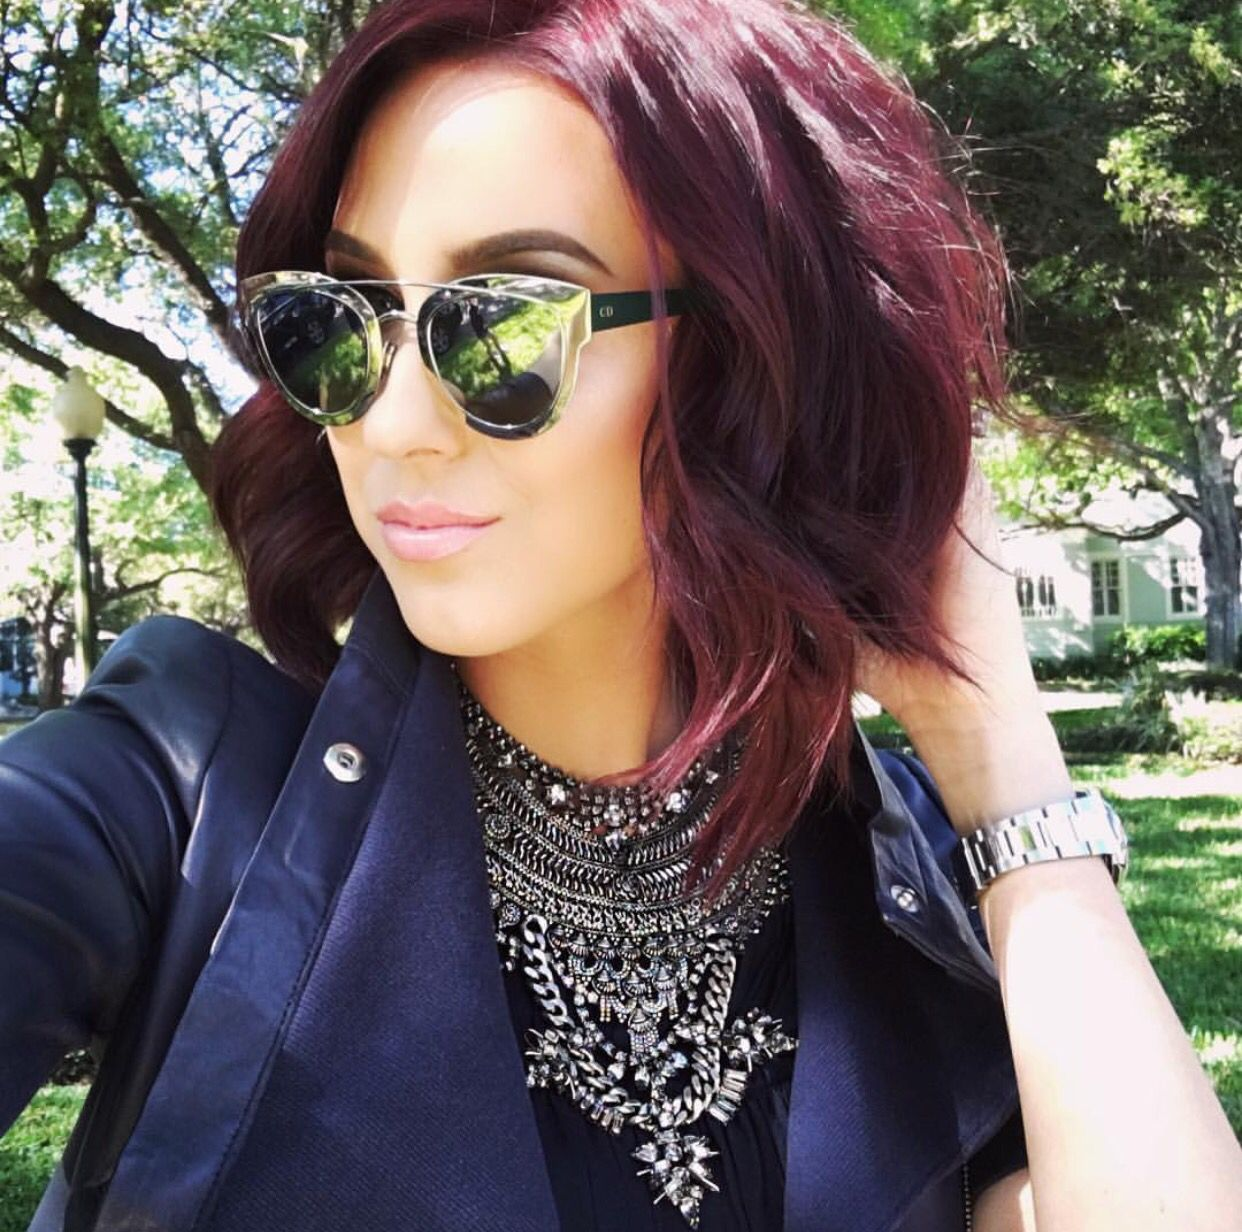 Ium obsessed with this hair color deep violet hair face nails